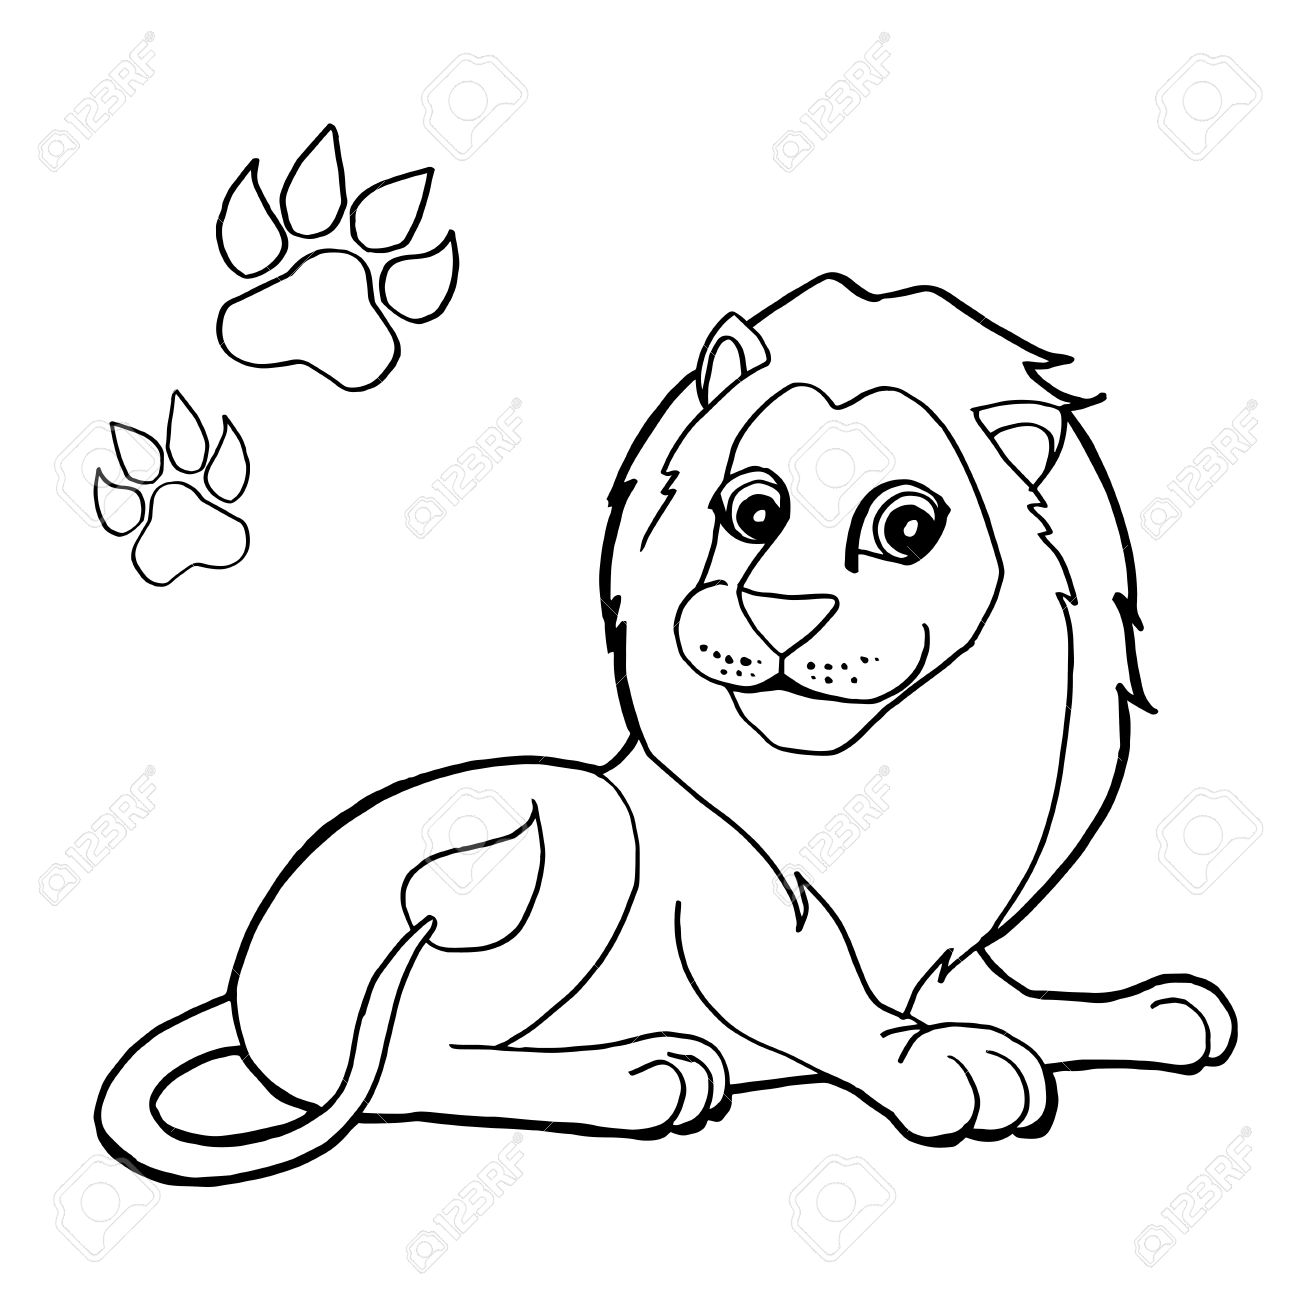 1300x1300 Paw Print With Lions Coloring Pages Royalty Free Cliparts, Vectors